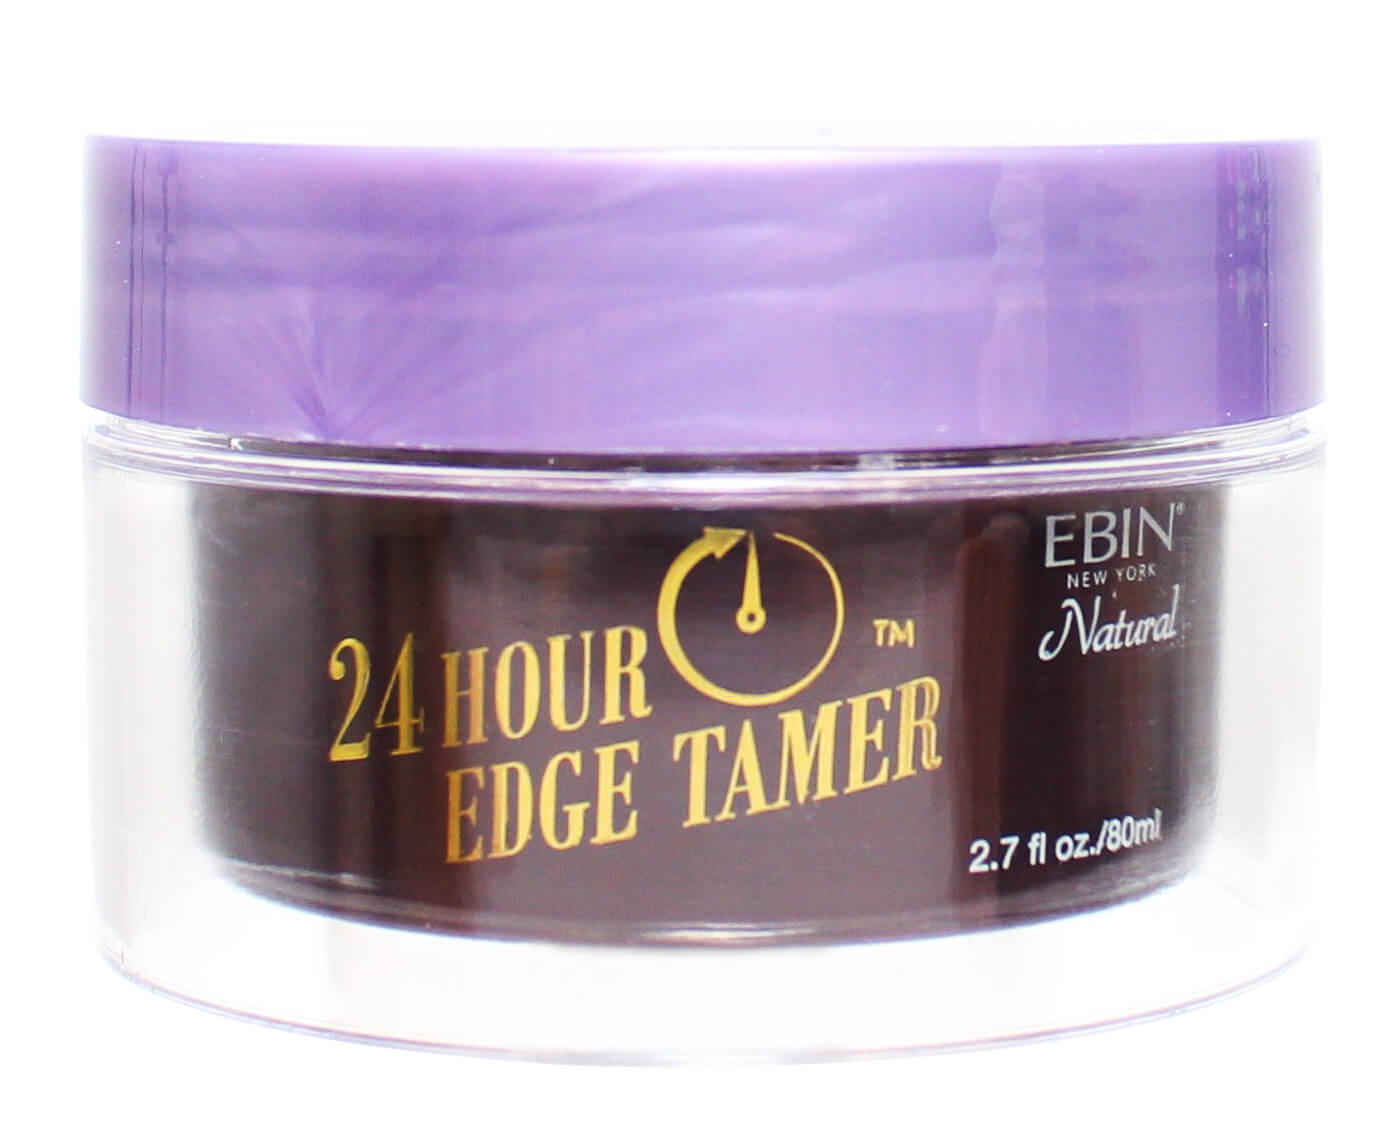 Ebin 24 Hour Edge Tamer – Extreme Firm Hold 2.7 oz